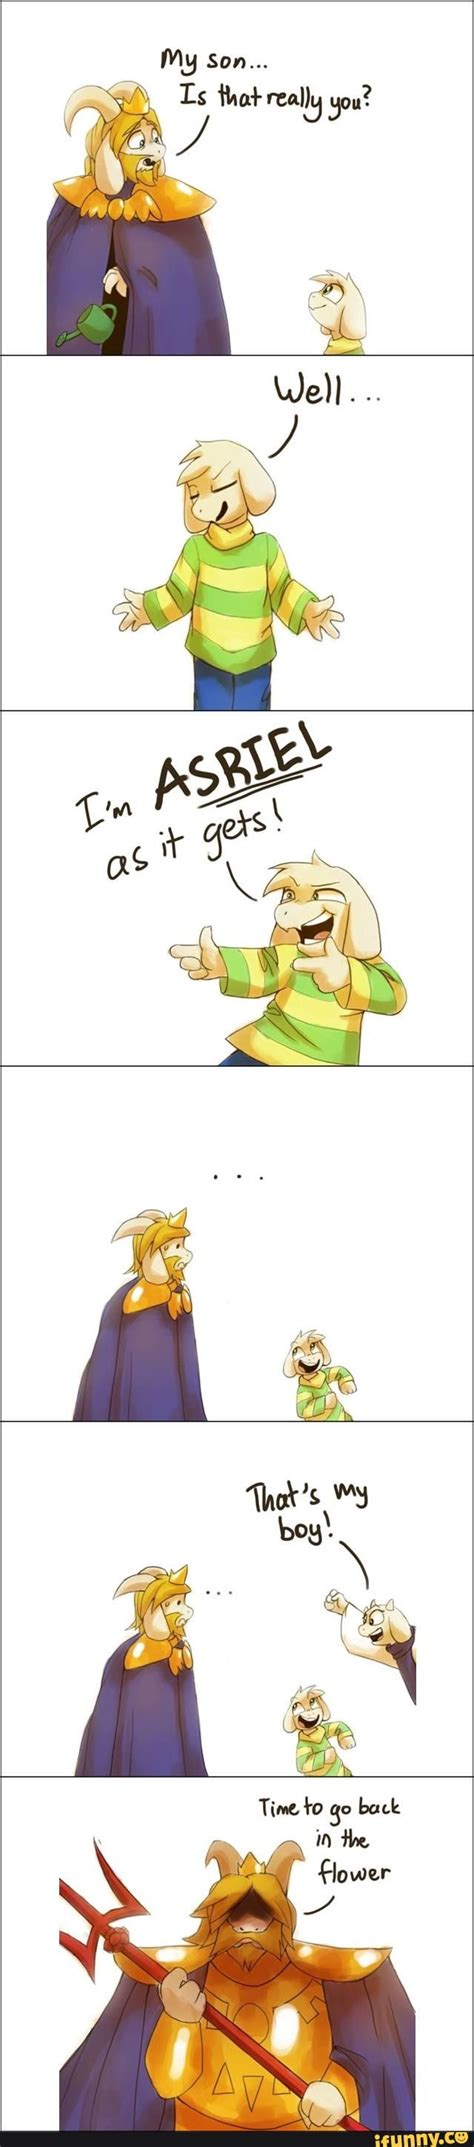 91 best undertale images on videogames ha ha and 21 best undertale images on ha ha undertale